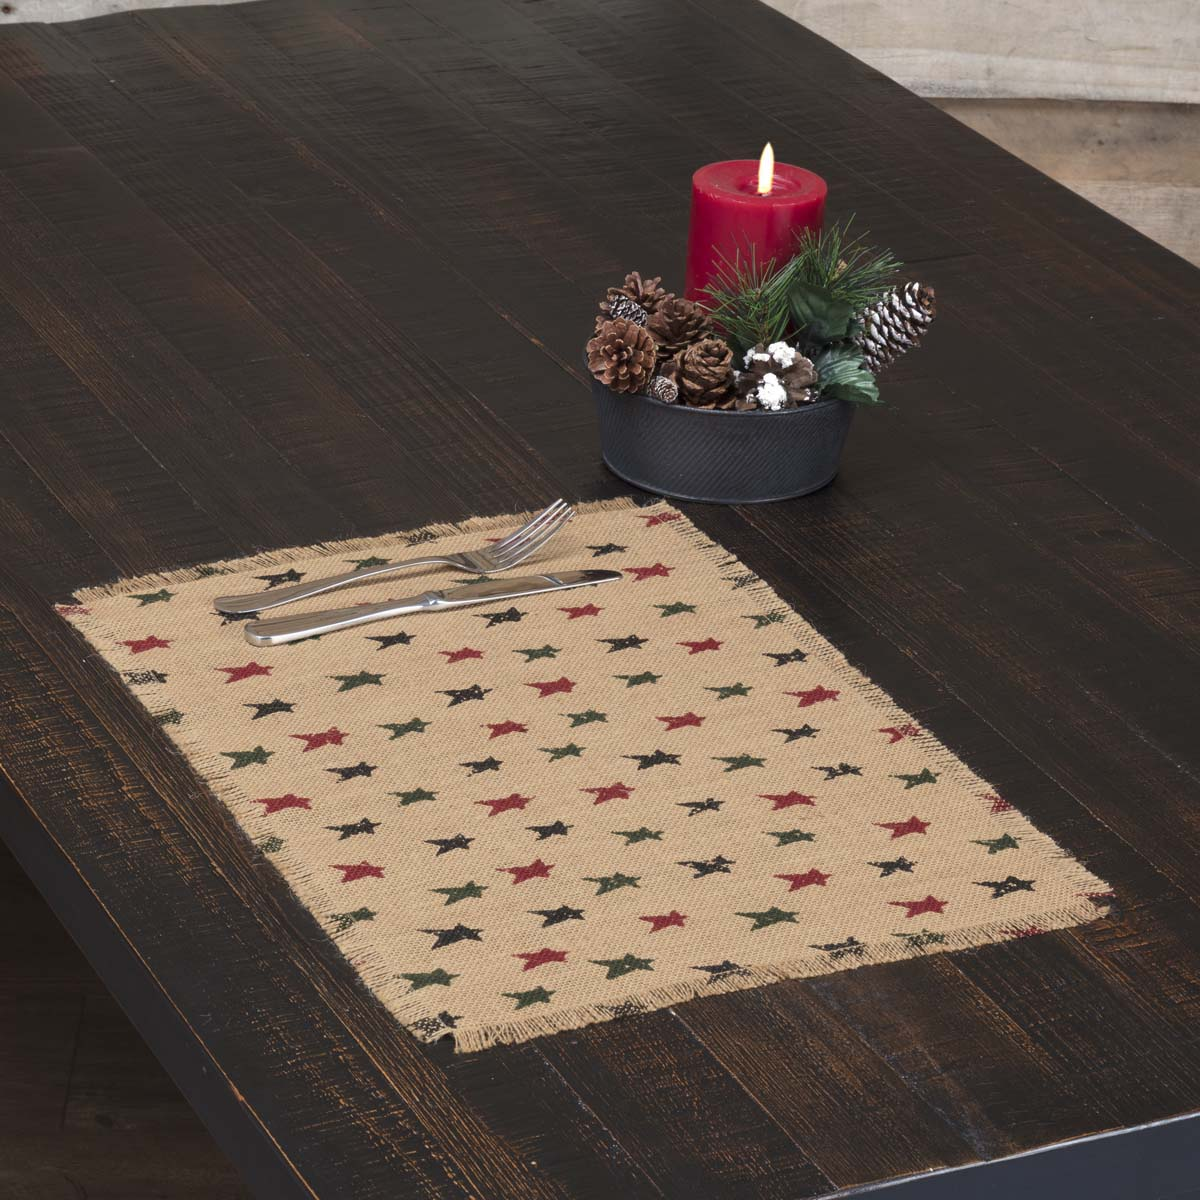 Primitive Star Jute Placemat Set of 6 12x18 - Woodrol